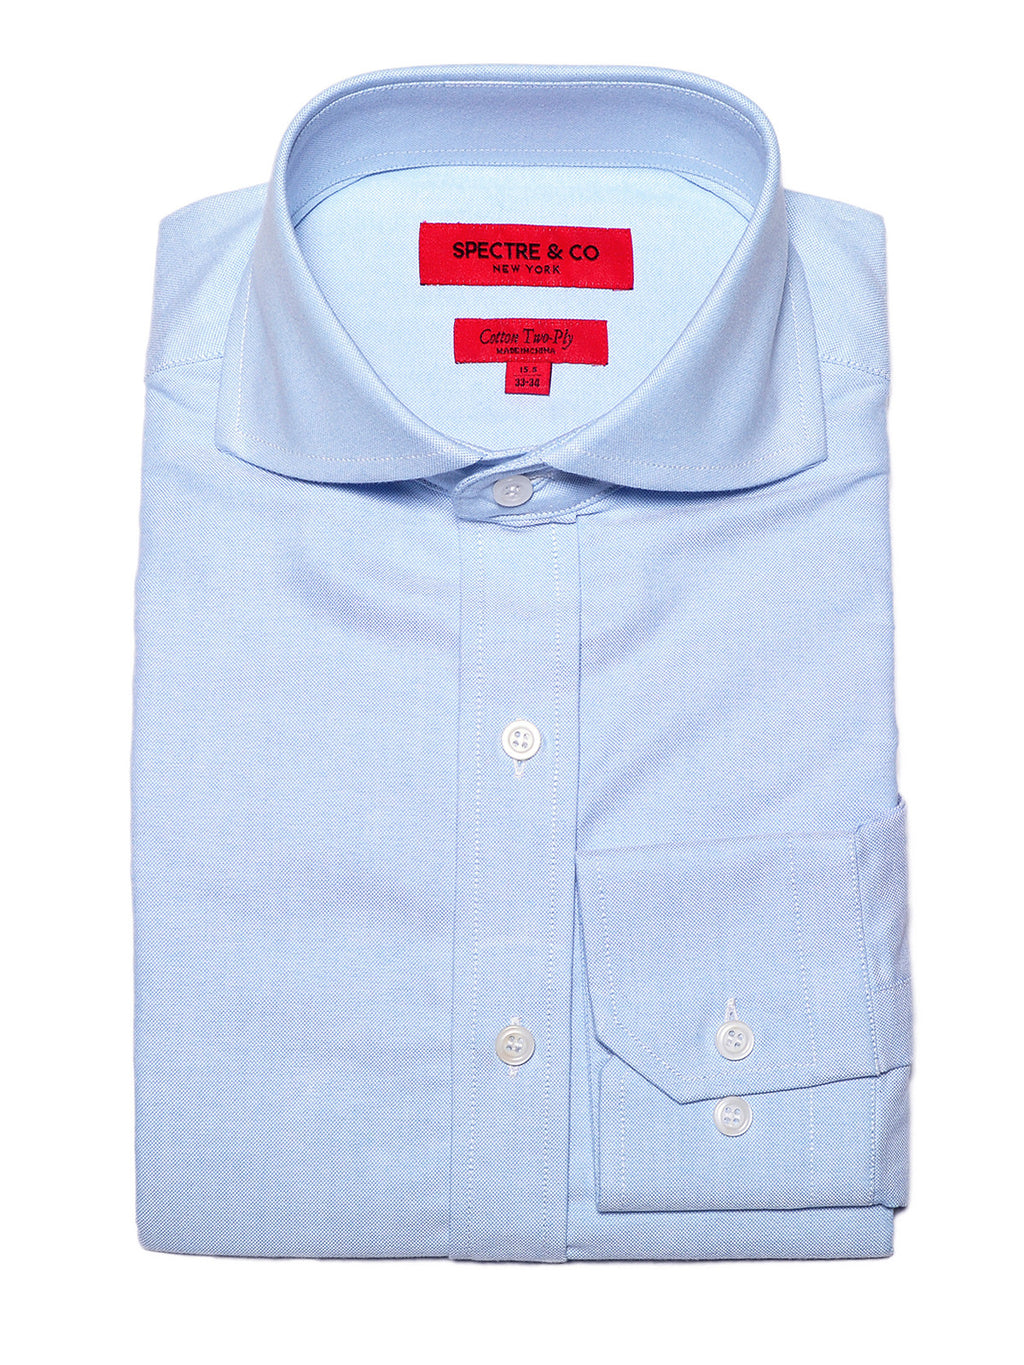 Slim Fit Washed Blue Oxford Cutaway Dress Shirt